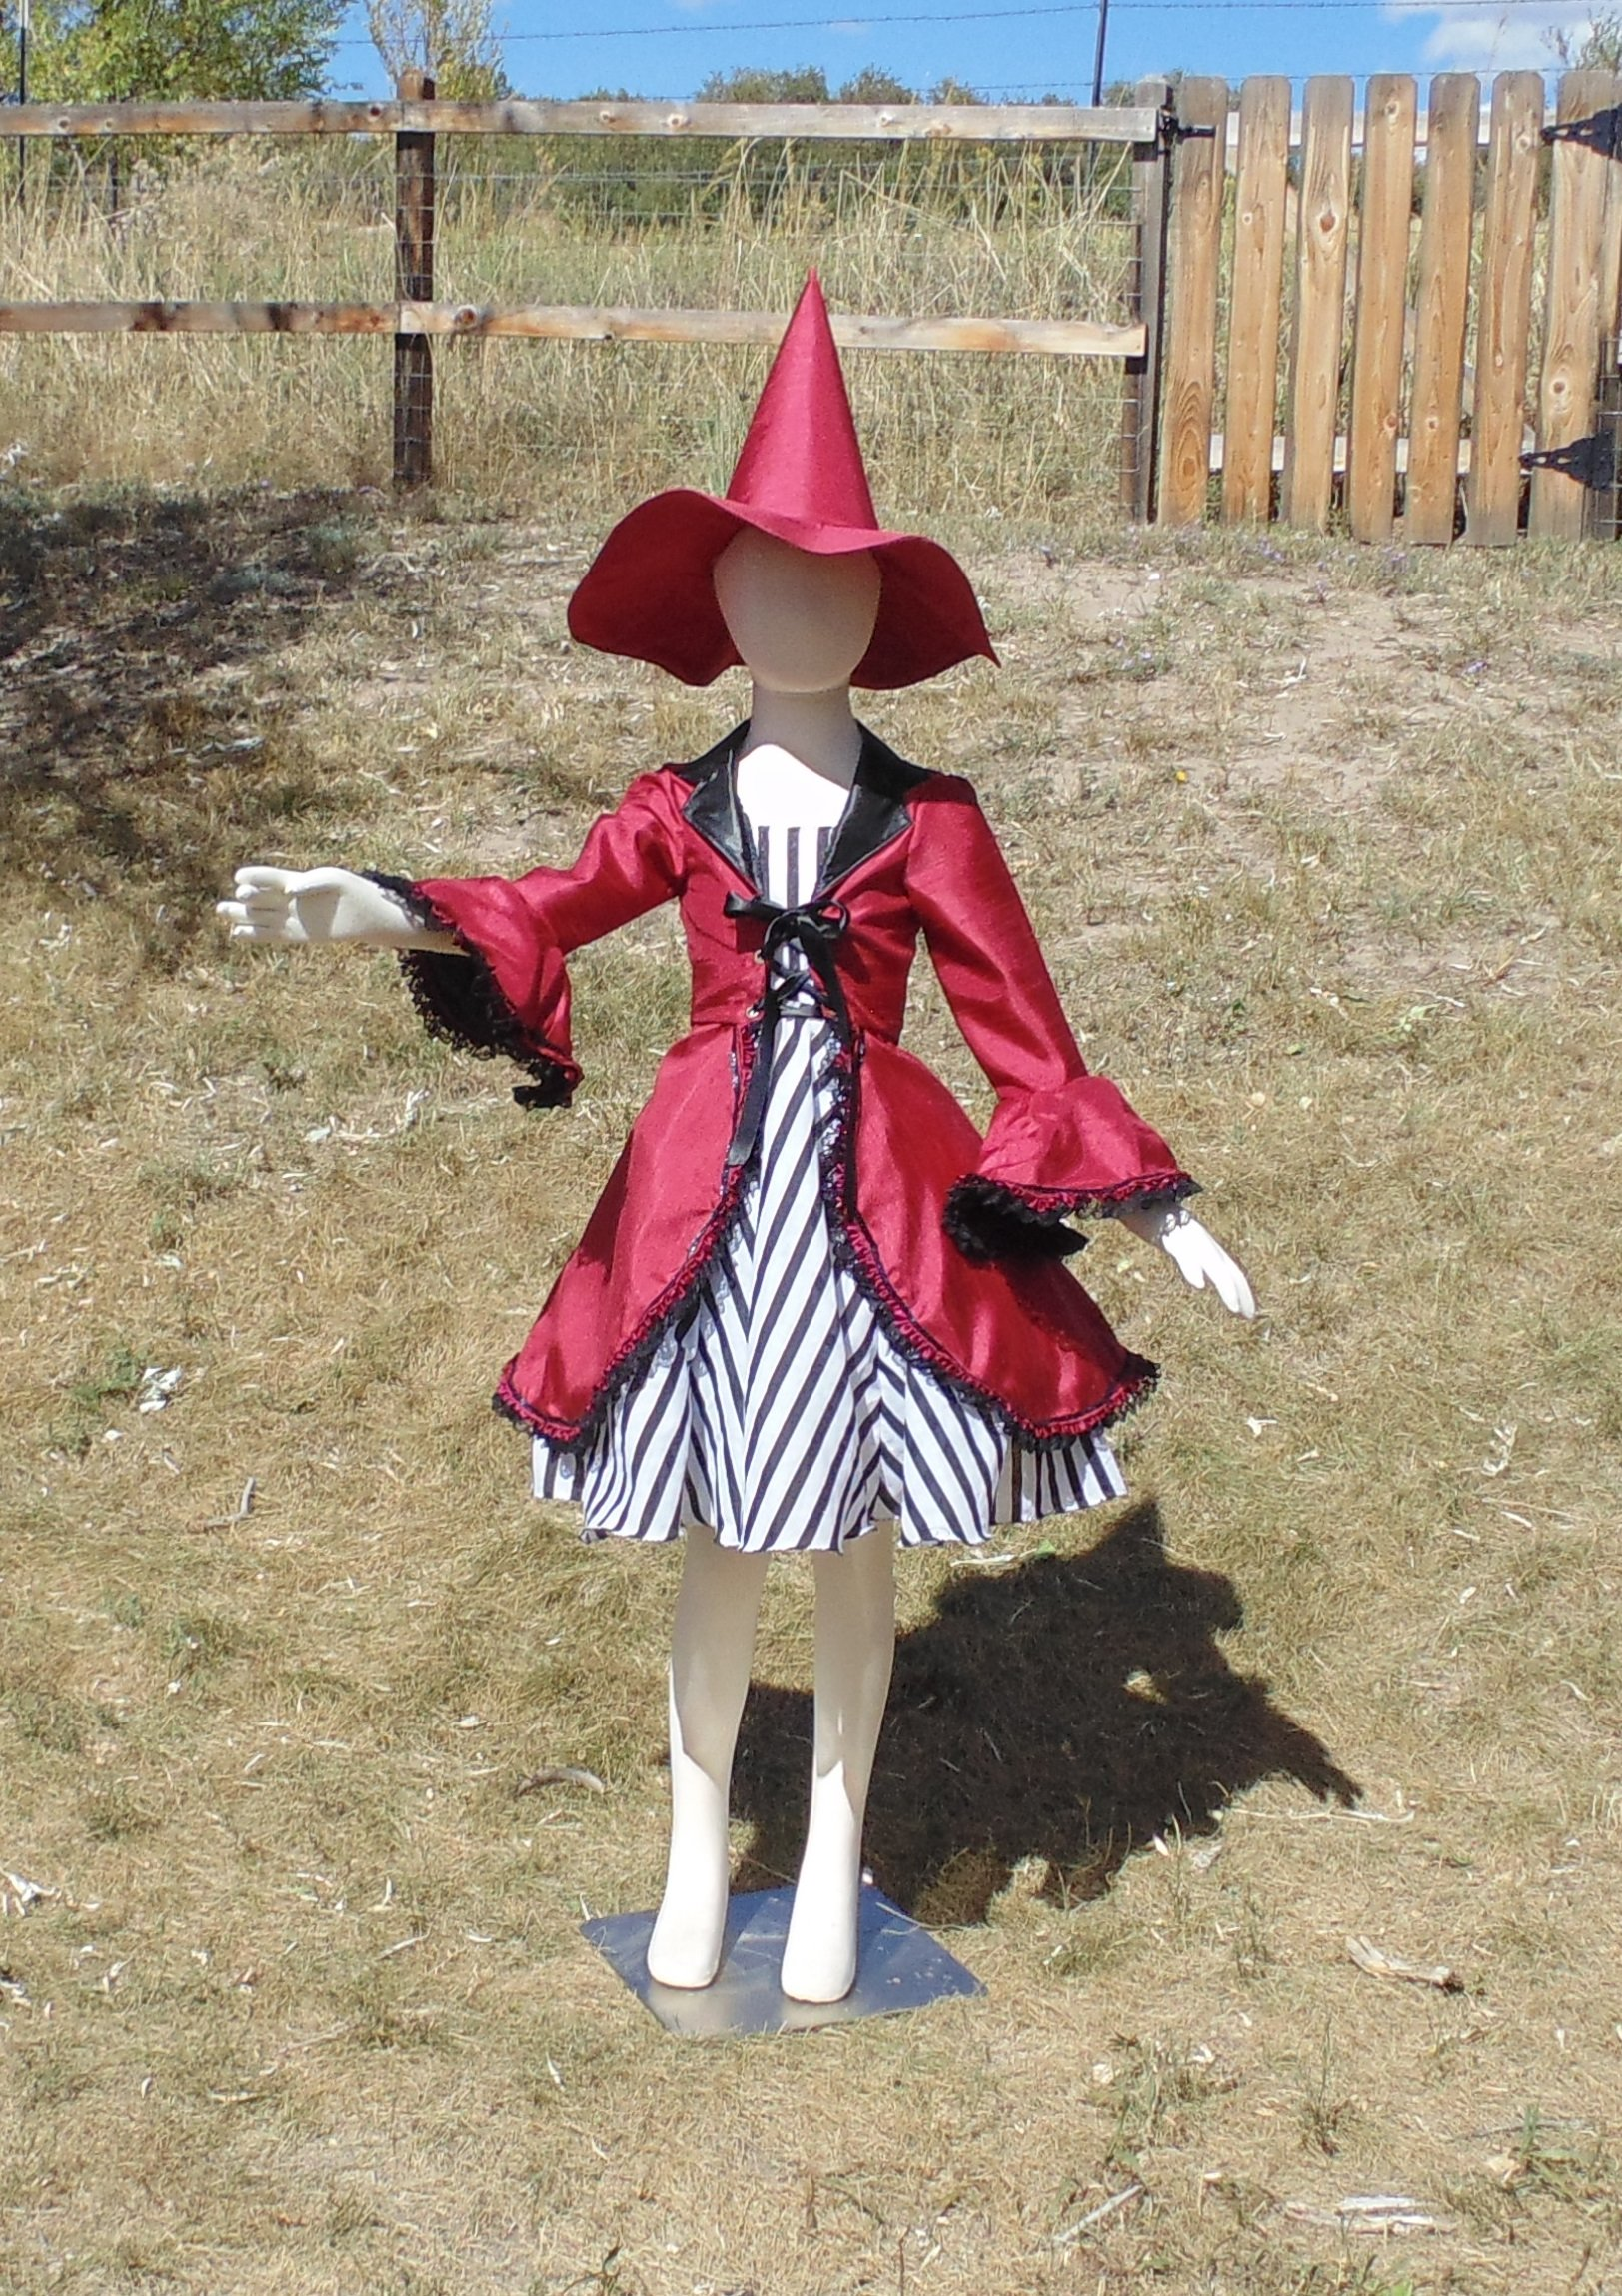 Girls 6-8 4 piece red Hocus Pocus Witch in crushed velvet by Fru Fru and Feathers Costumes & Gifts